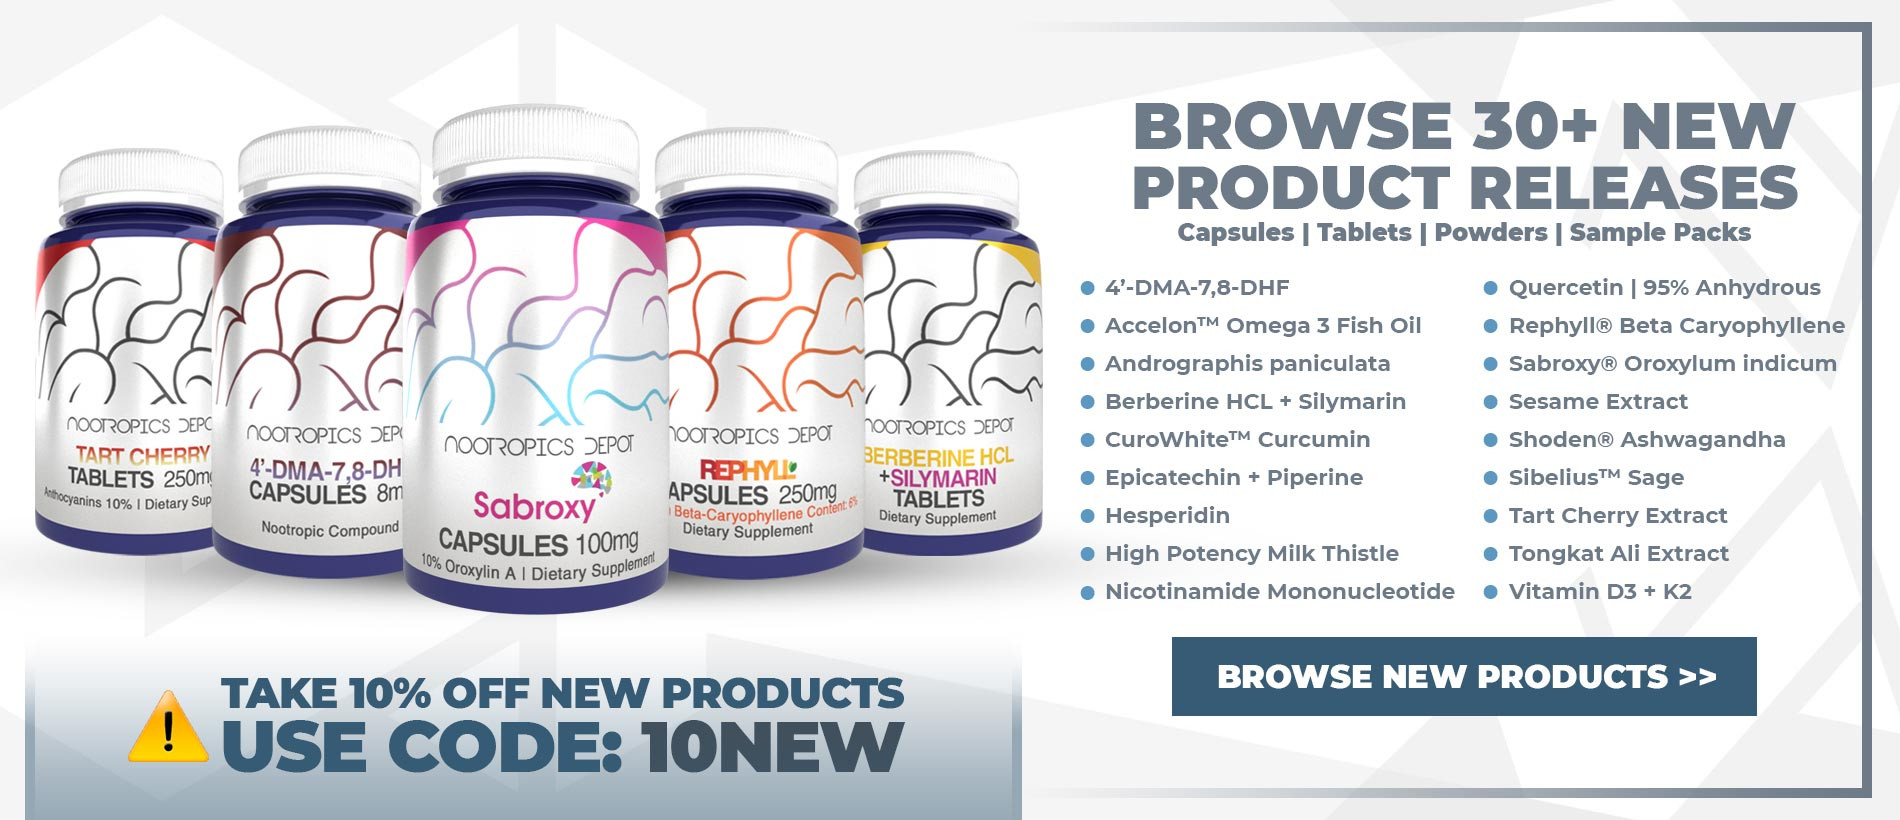 Browse 30+ New Products From Nootropics Depot - Take 10% Off All New Products With Coupon Code 10NEW